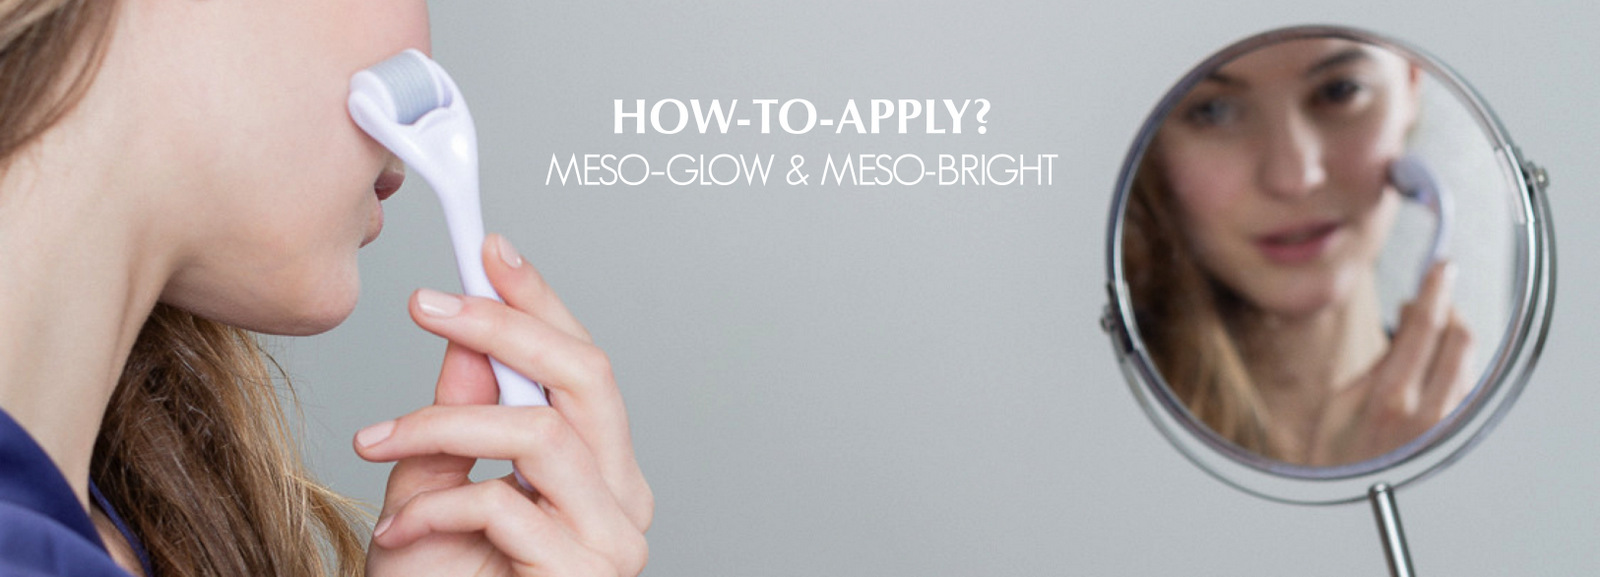 How To Apply - MESO-GLOW & MESO-BRIGHT - At Home Mesotherapy by Laboratoires Surface-Paris